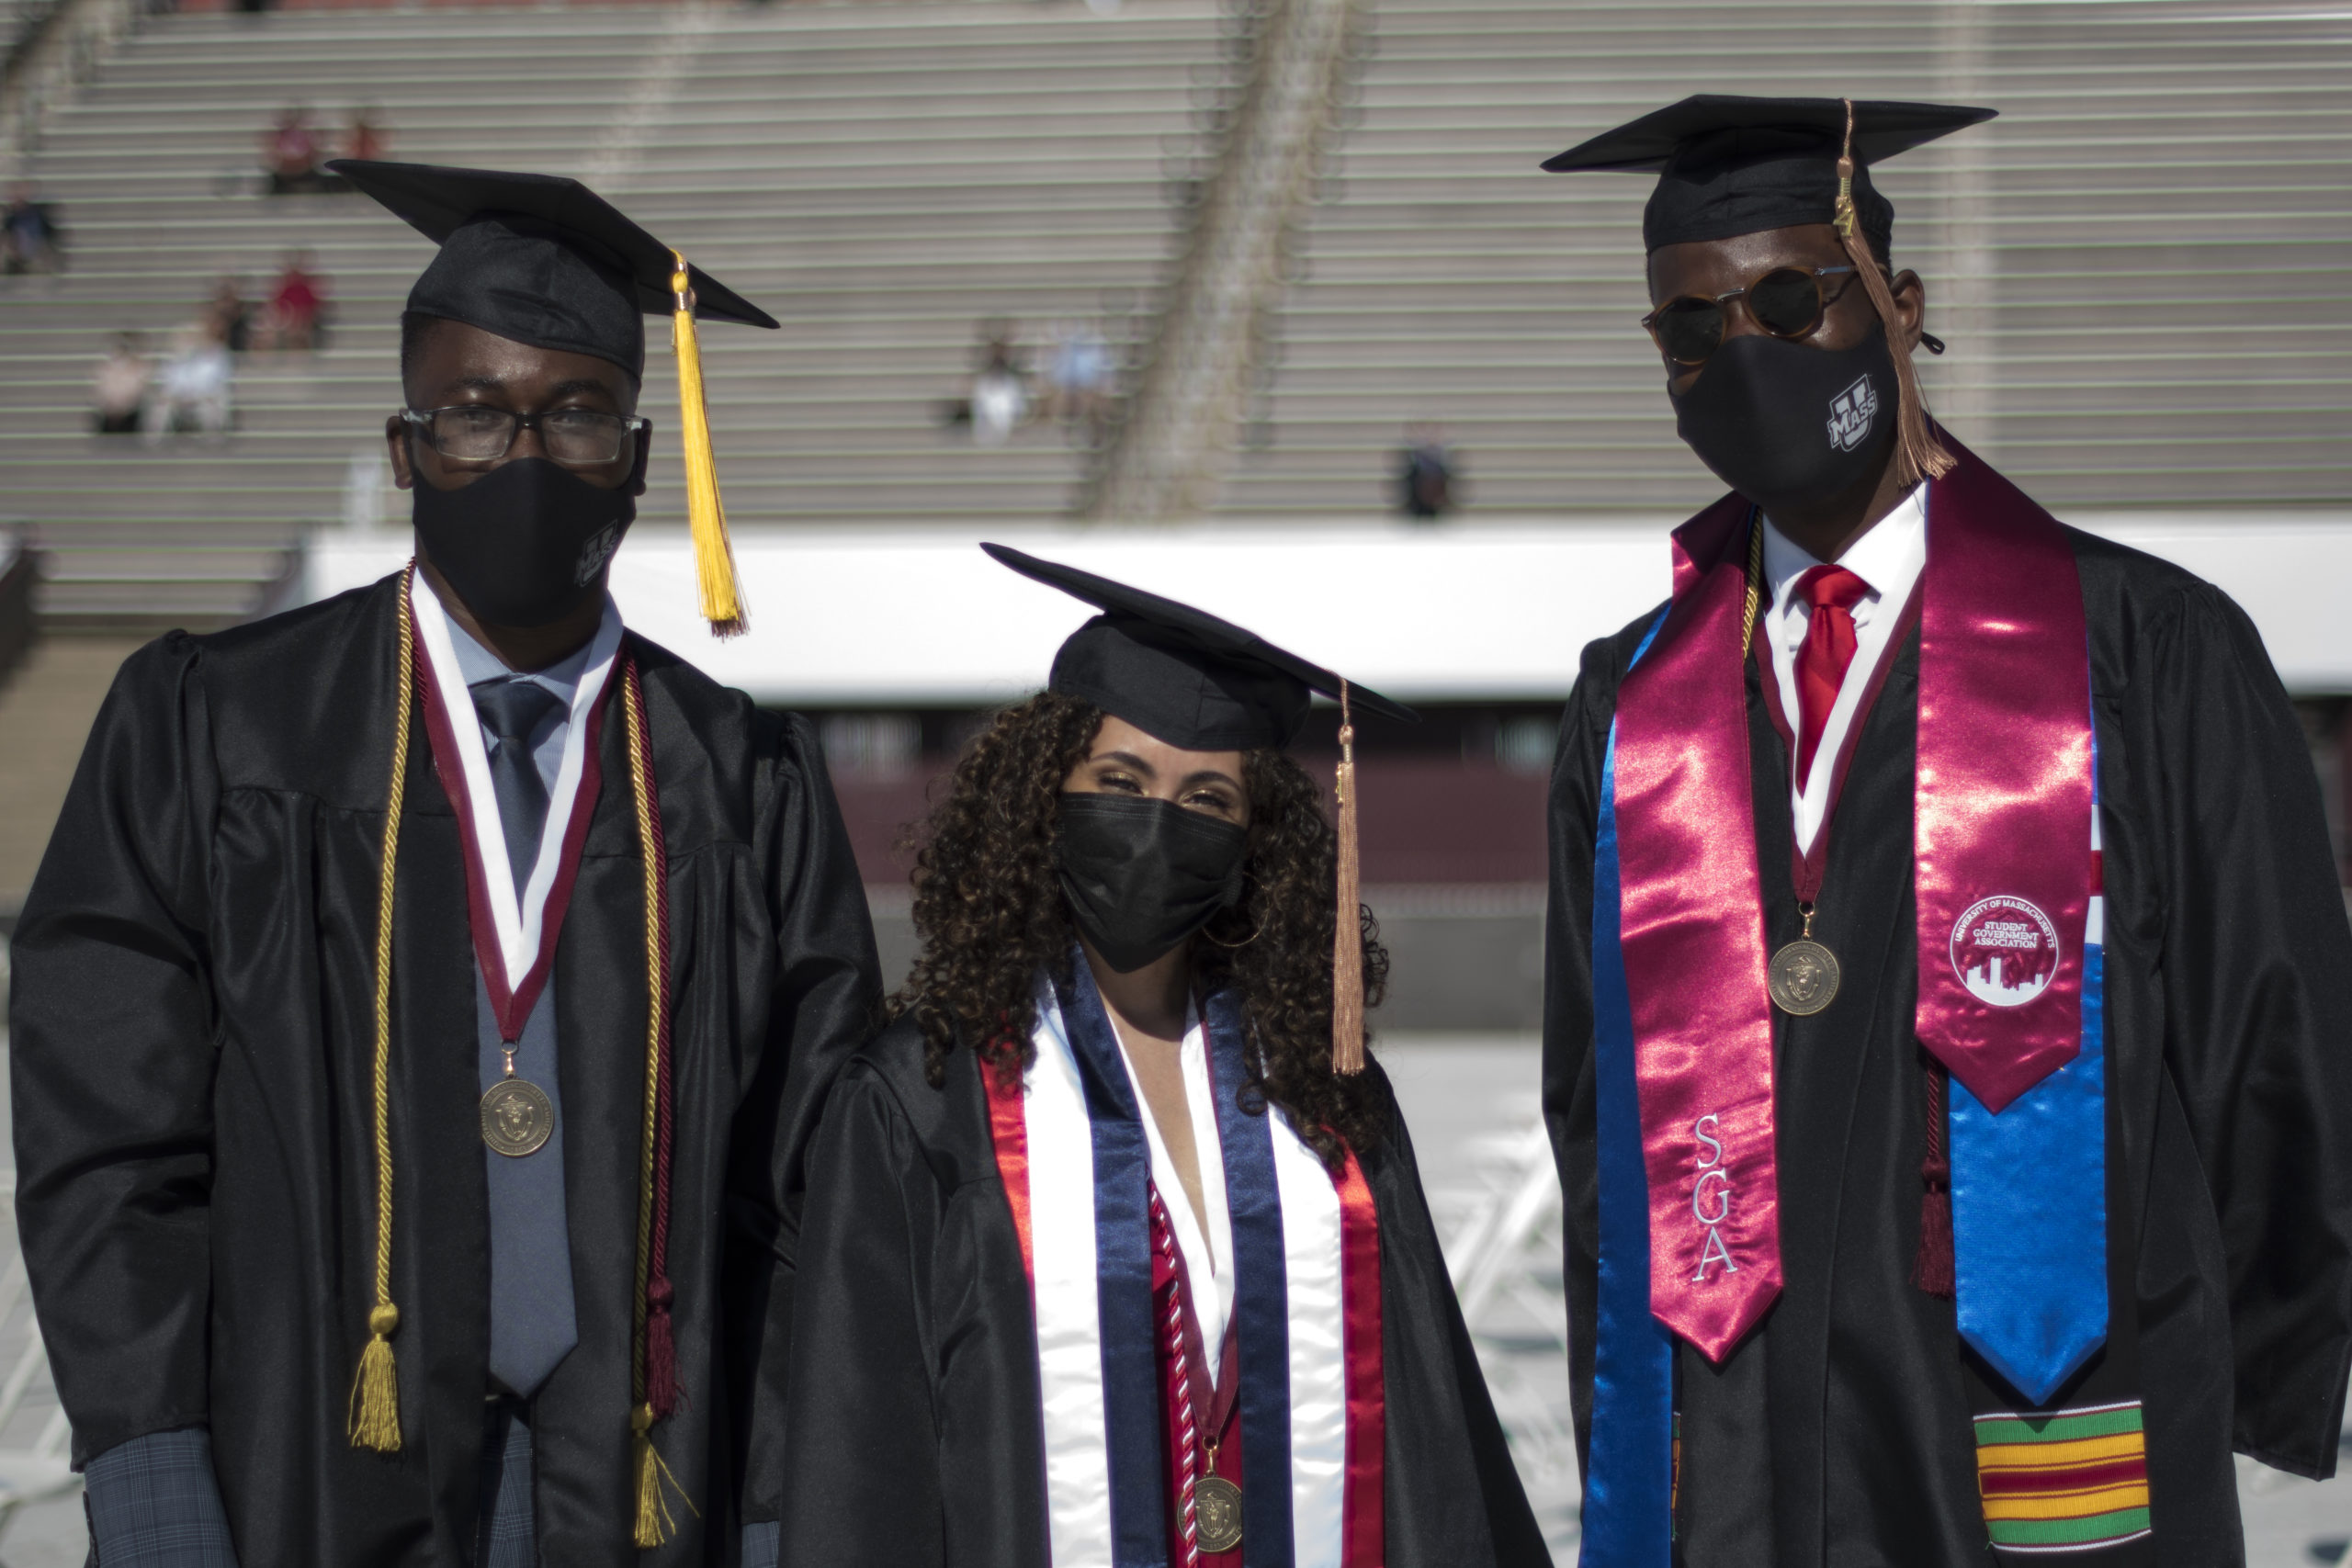 Three students wearing masks at UMass Amherst 2021 commencement ceremony